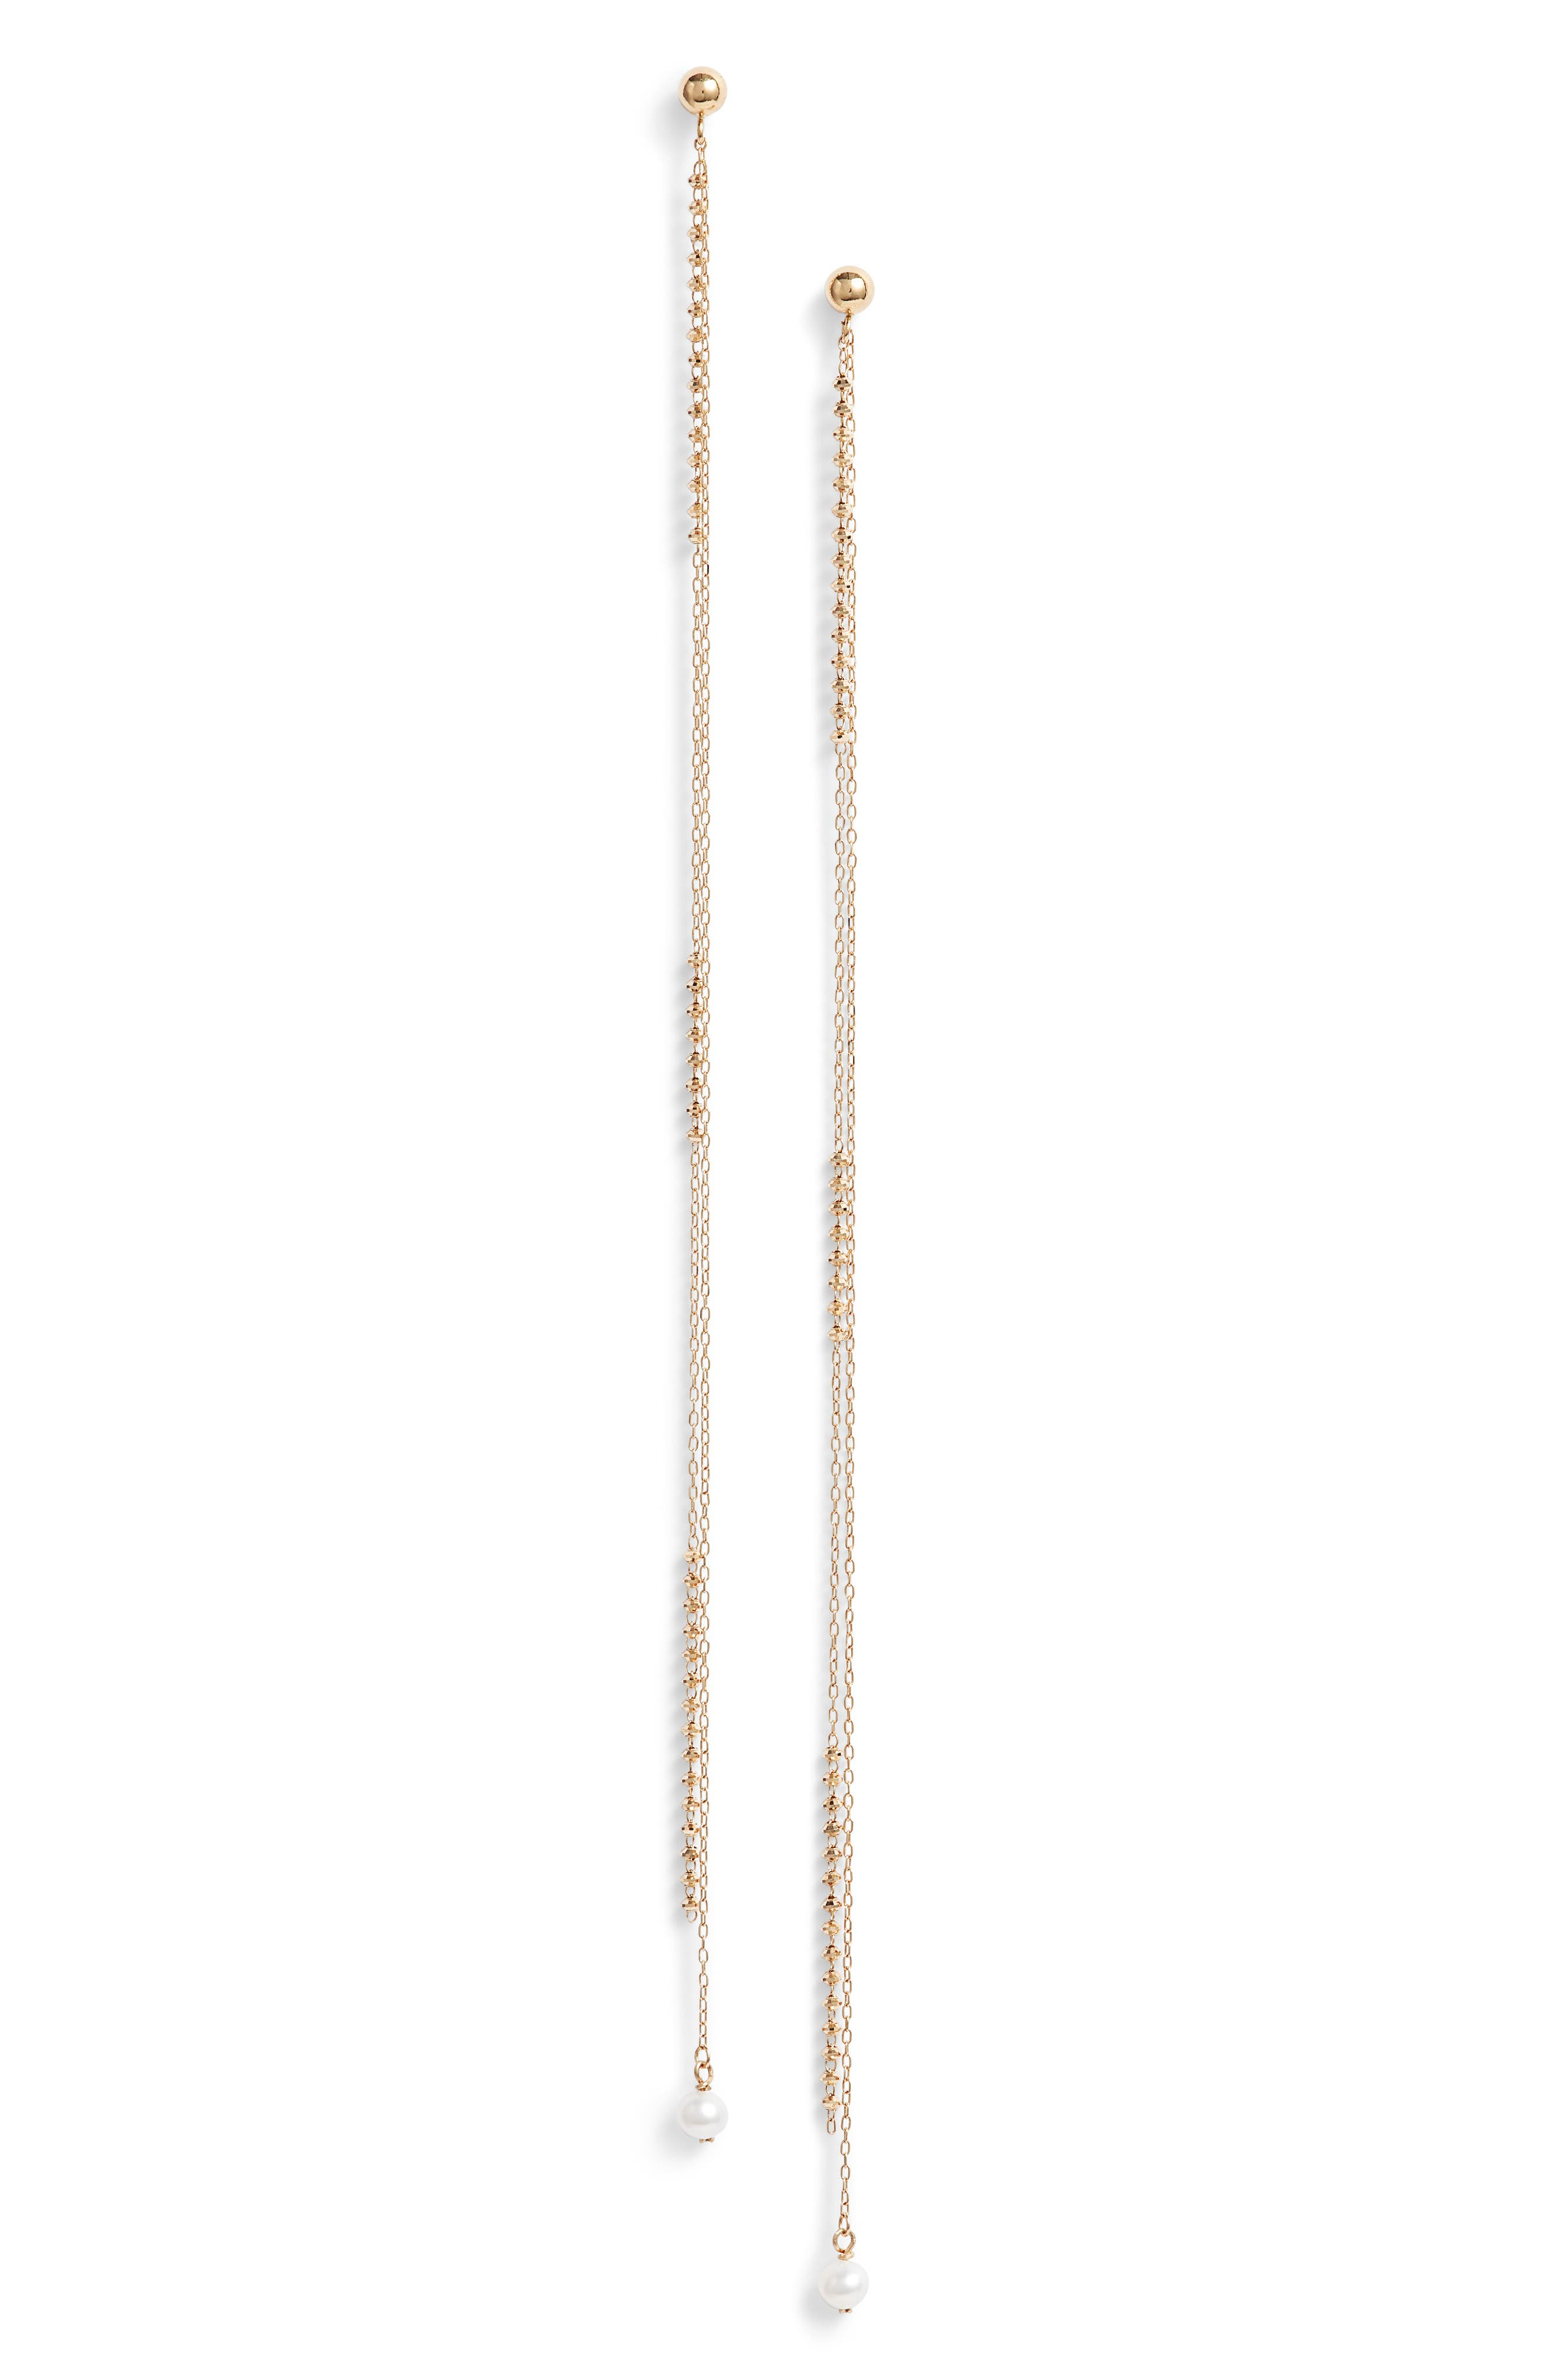 Shimmer Double Chain Baby Pearl Long Drop Earrings,                         Main,                         color, Yellow Gold/ White Pearl